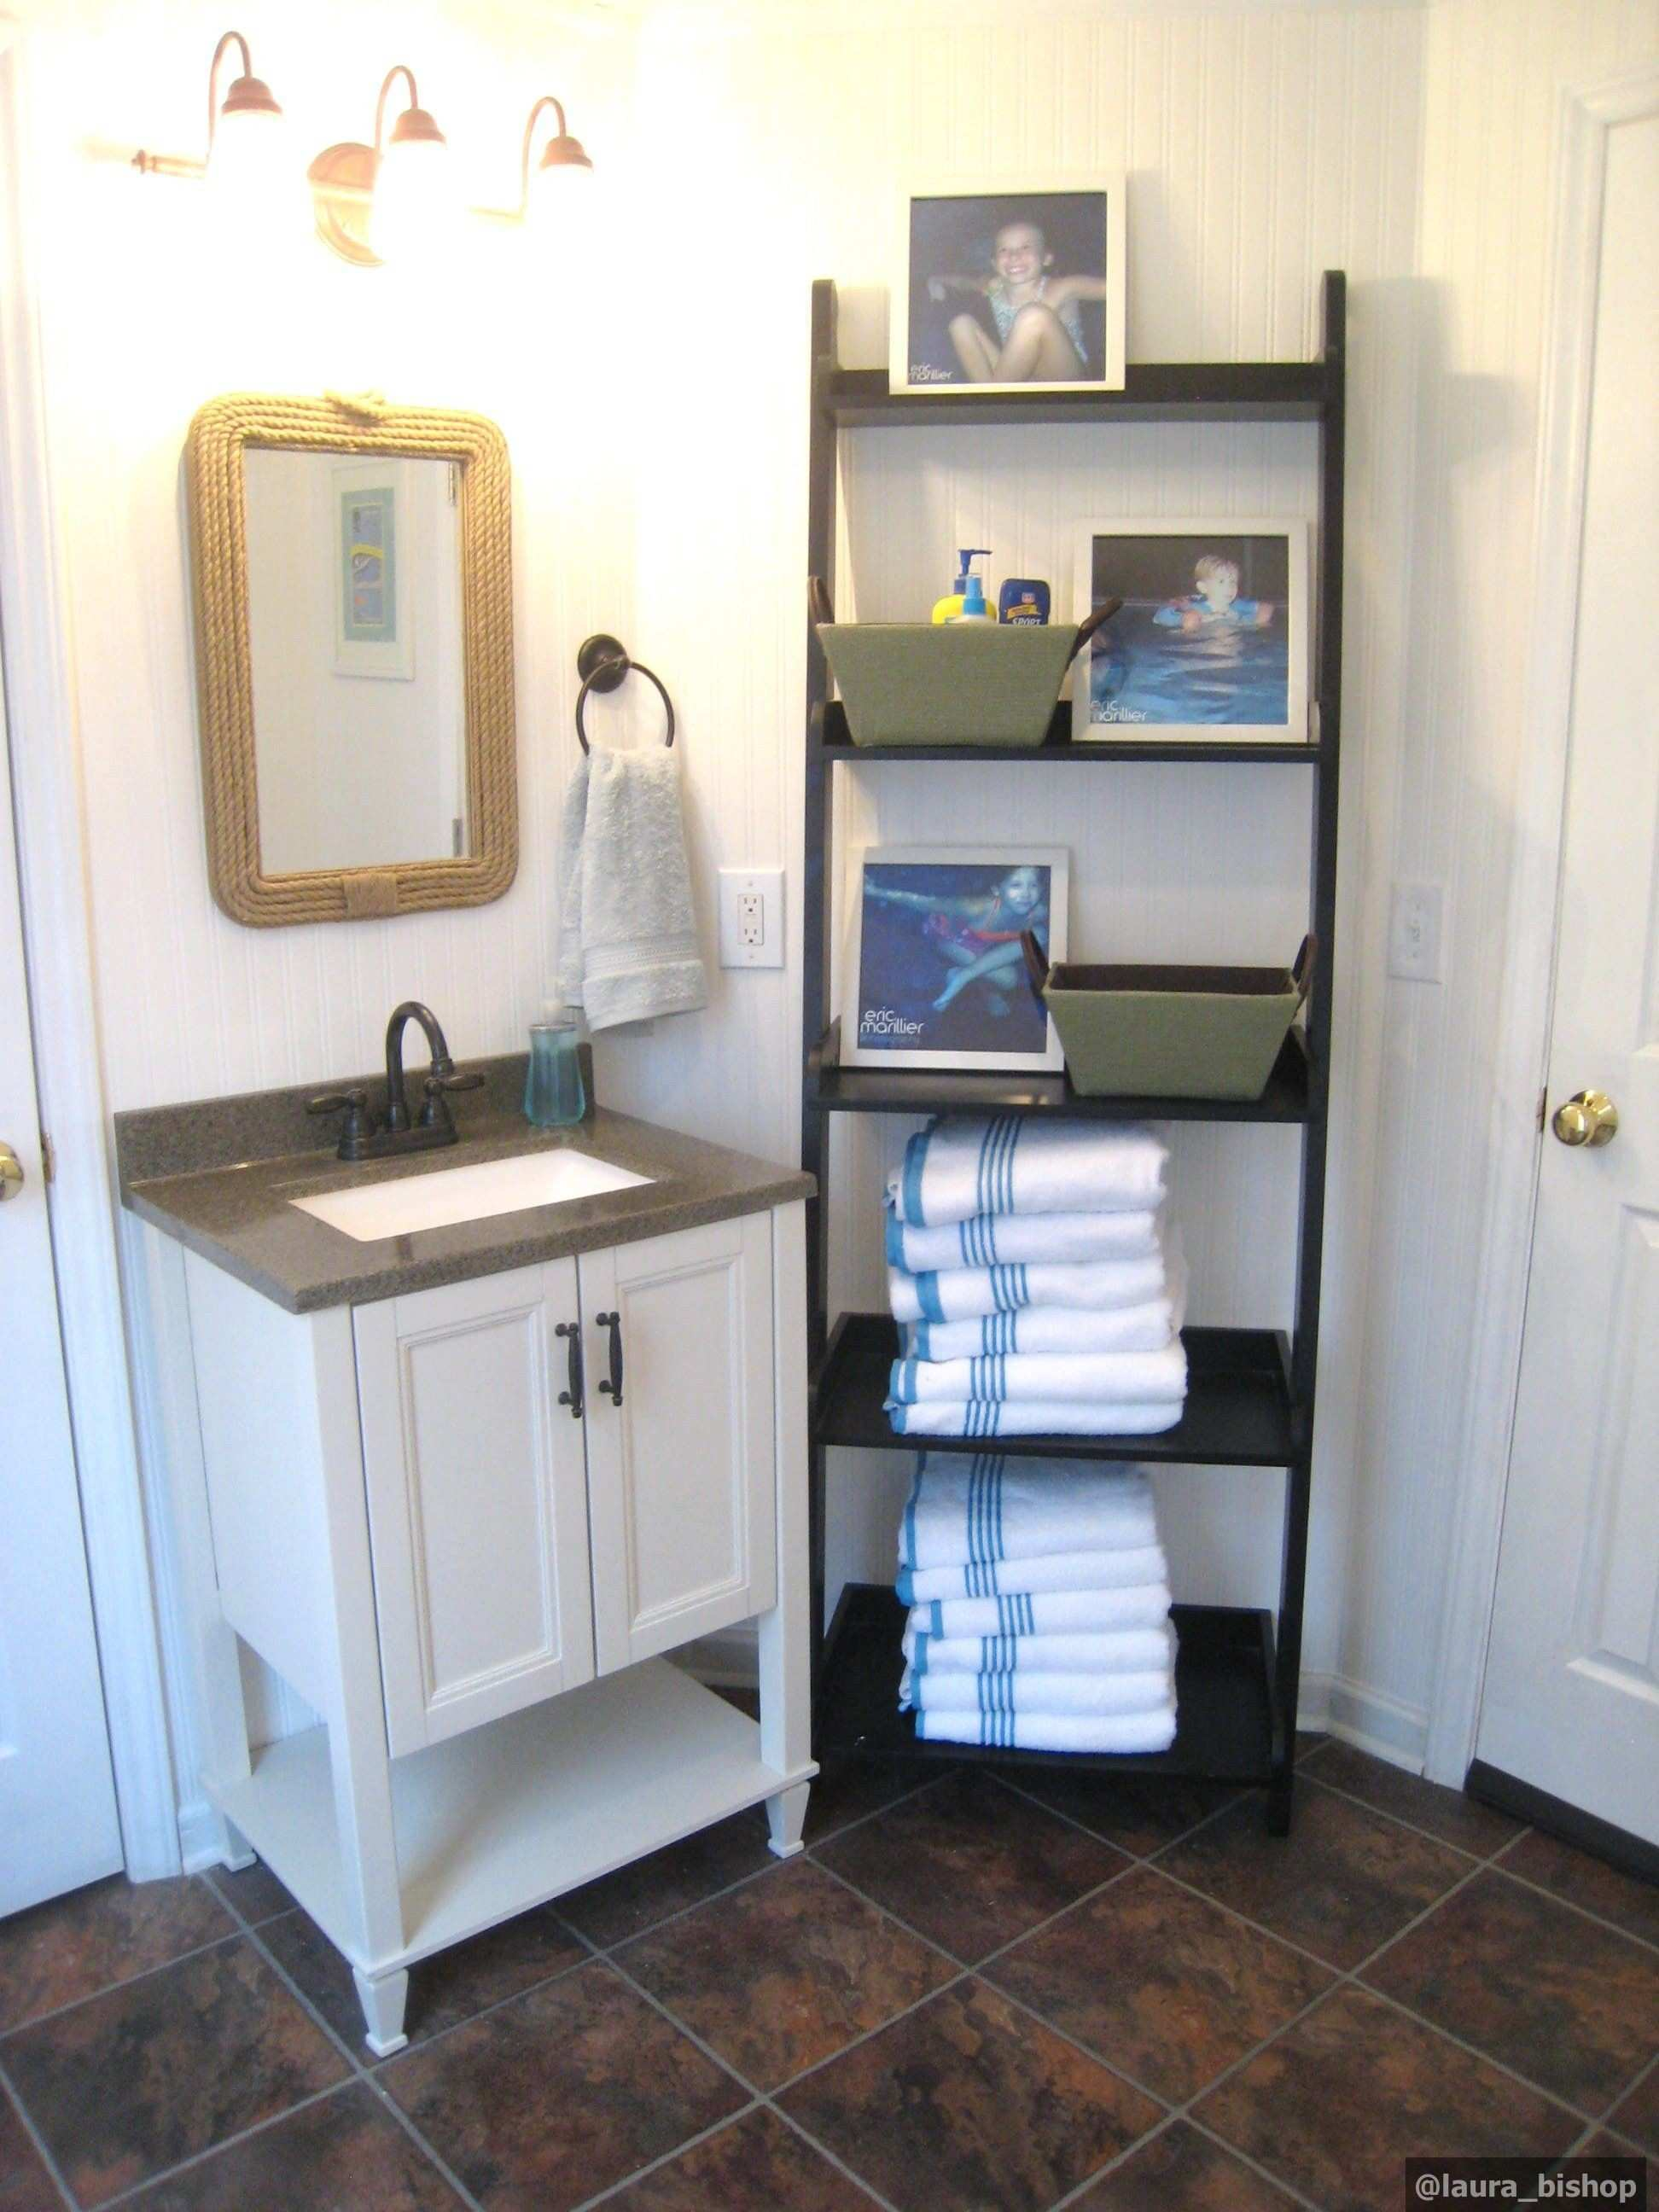 Pool changing room Sink Mirror and ladder shelves…